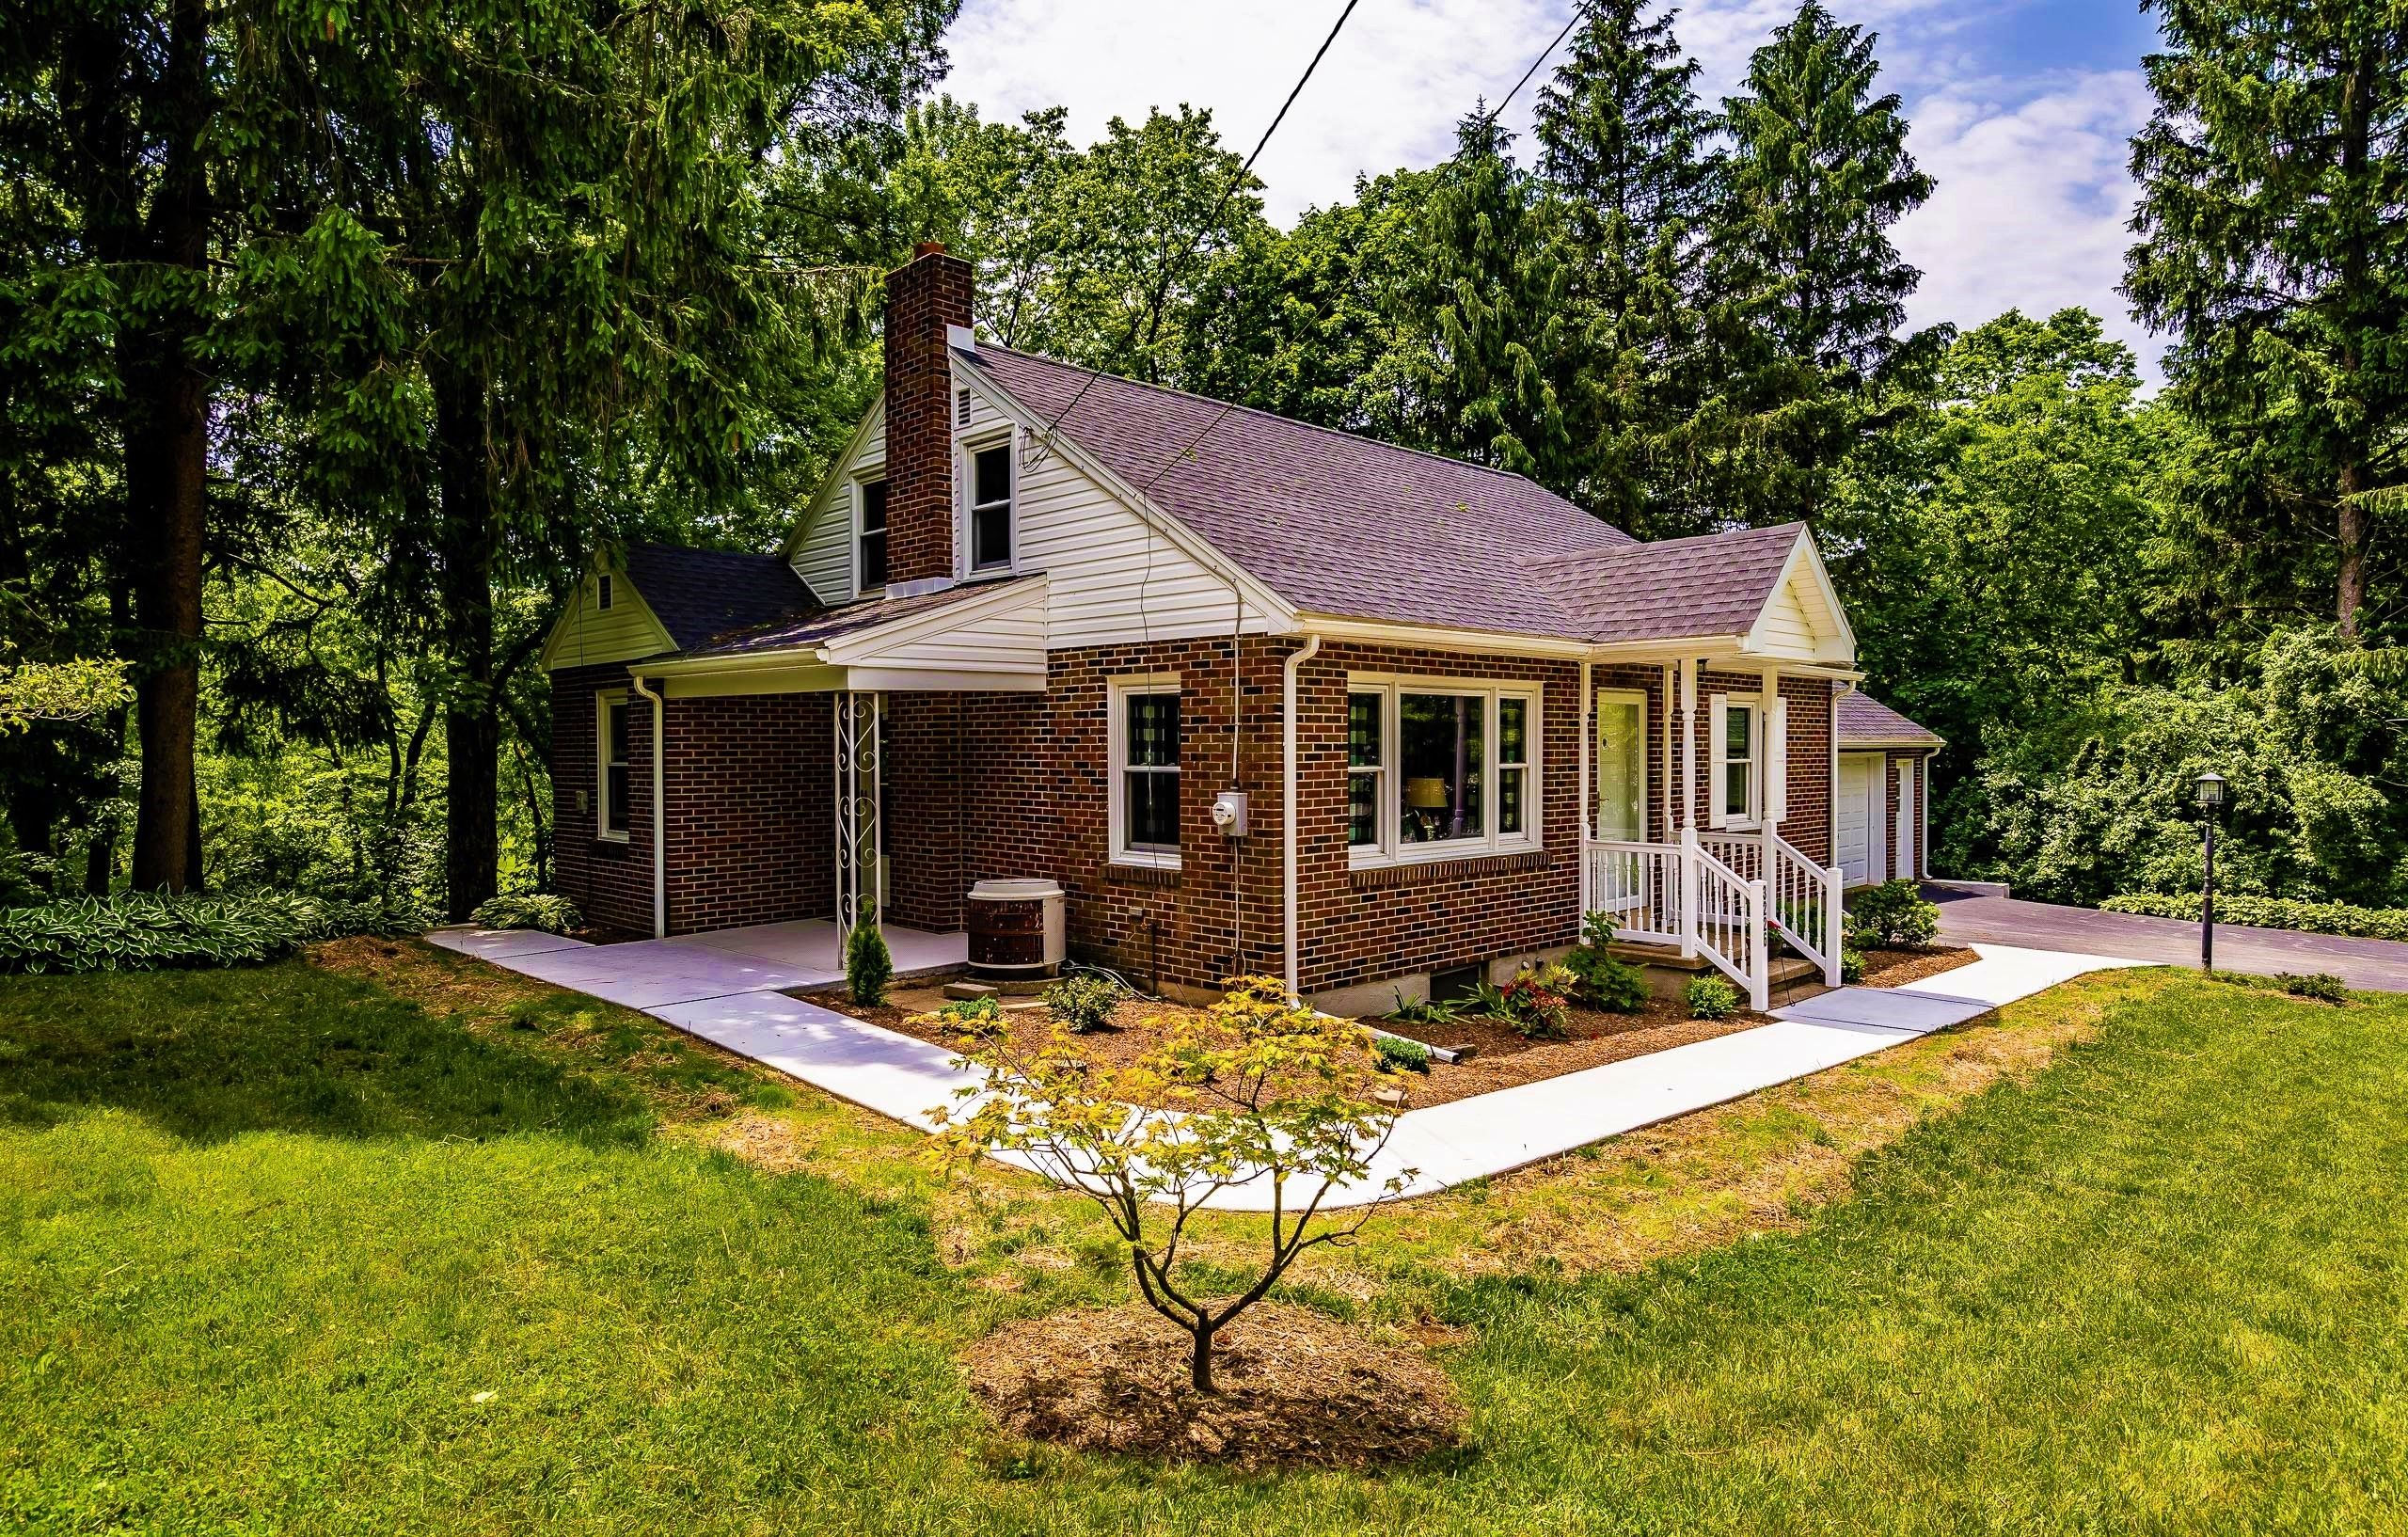 Status Sold Address 3226 State Hill Rd Reading Pa 19608 Community None City Boro Or Twp Lower Heidelberg Twp In 2020 Estate Homes House Styles Real Estate